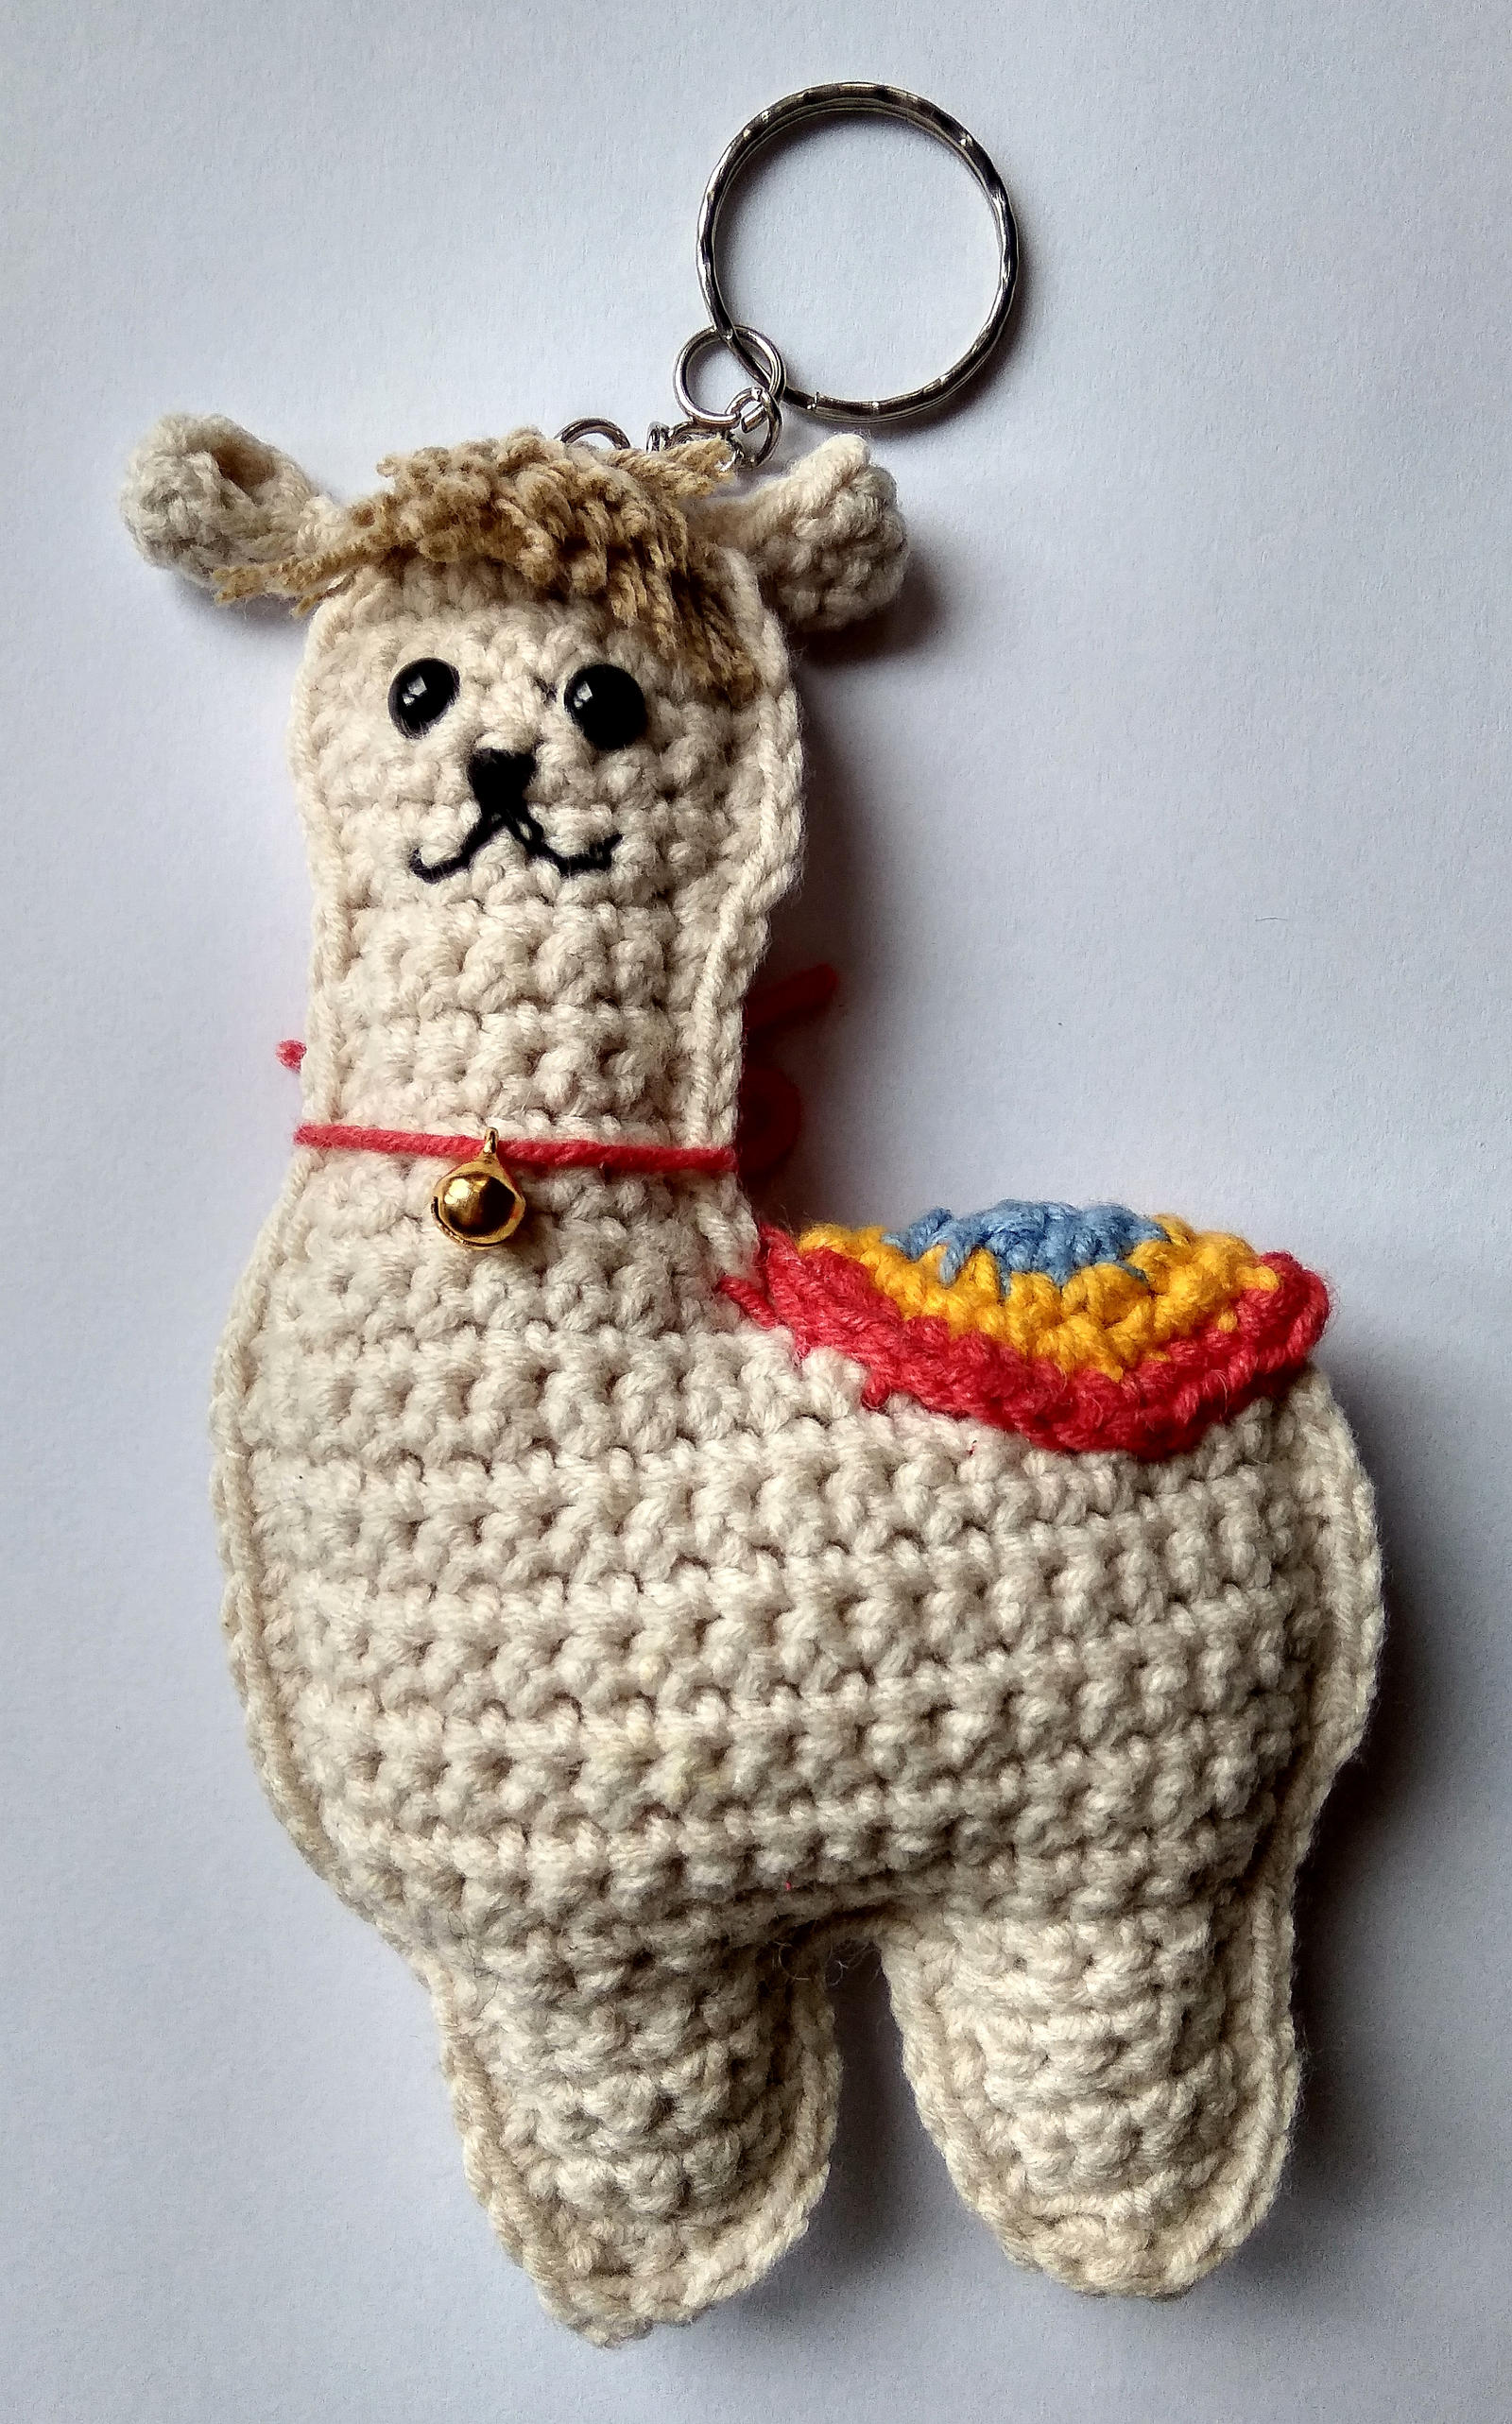 Alpaca Crochet Pattern Llama Amigurumi Pattern Cuddle Toy Stuffed ... | 2565x1600